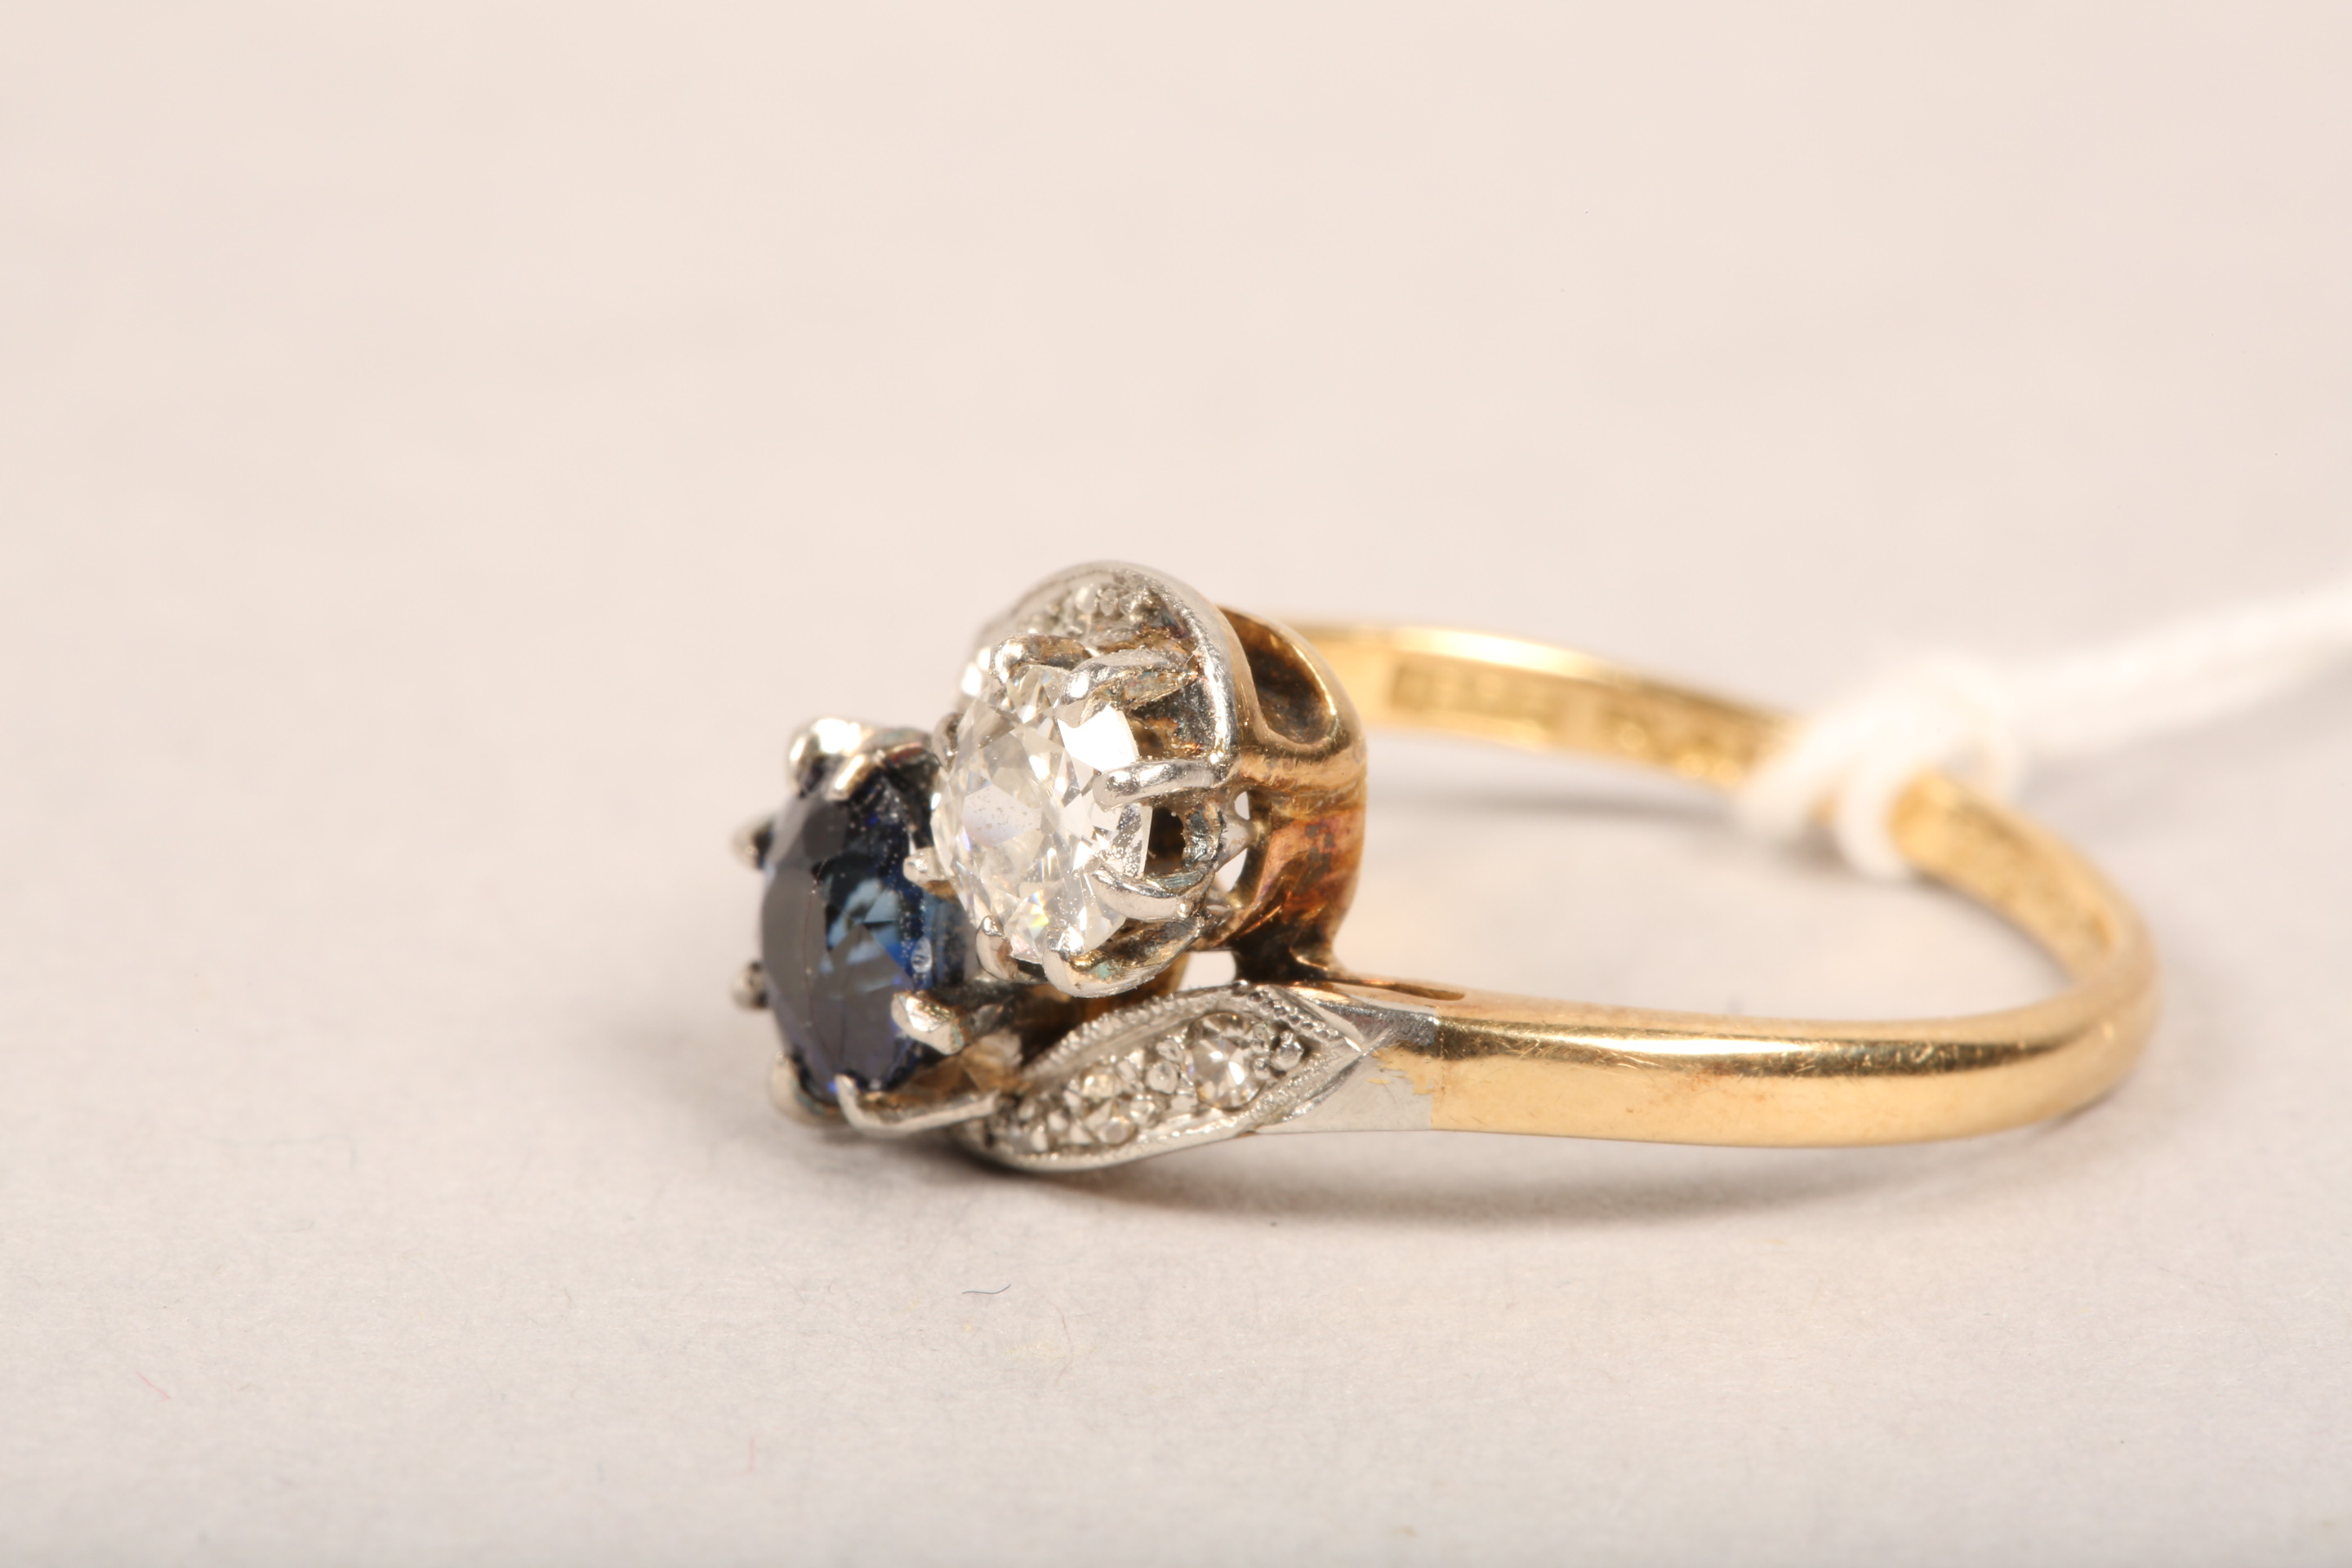 Ladies 18 carat gold diamond and sapphire ring, 0.33 diamond and 0.5 sapphire in twist setting, - Image 4 of 8